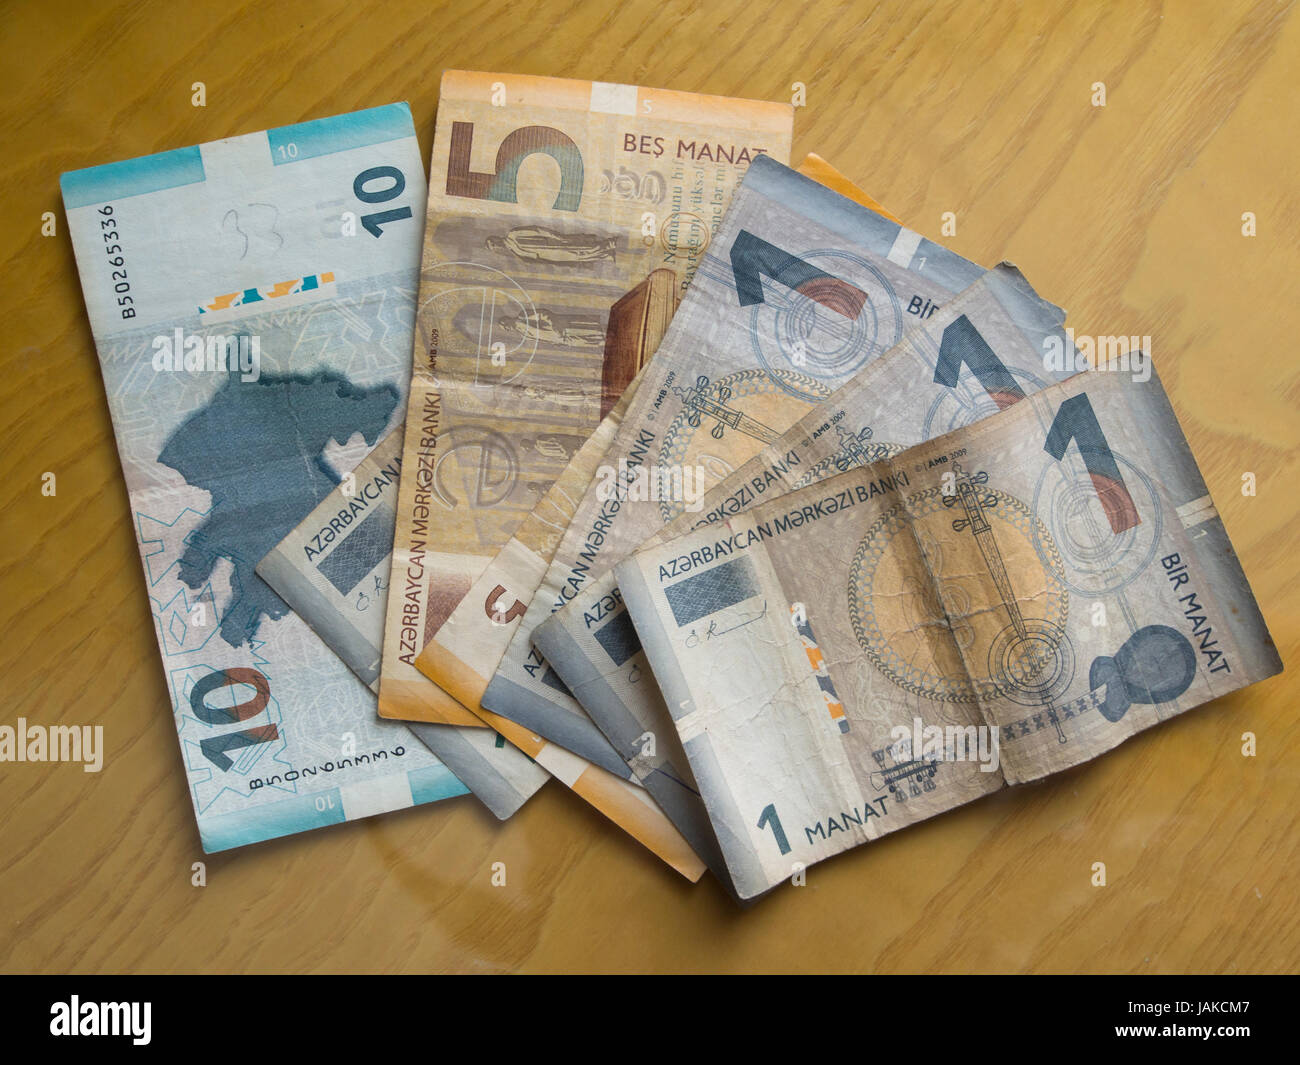 Azerbaijani currency, manat, isolated on a wooden table, fan of 1, 5 and 10 banknotes - Stock Image